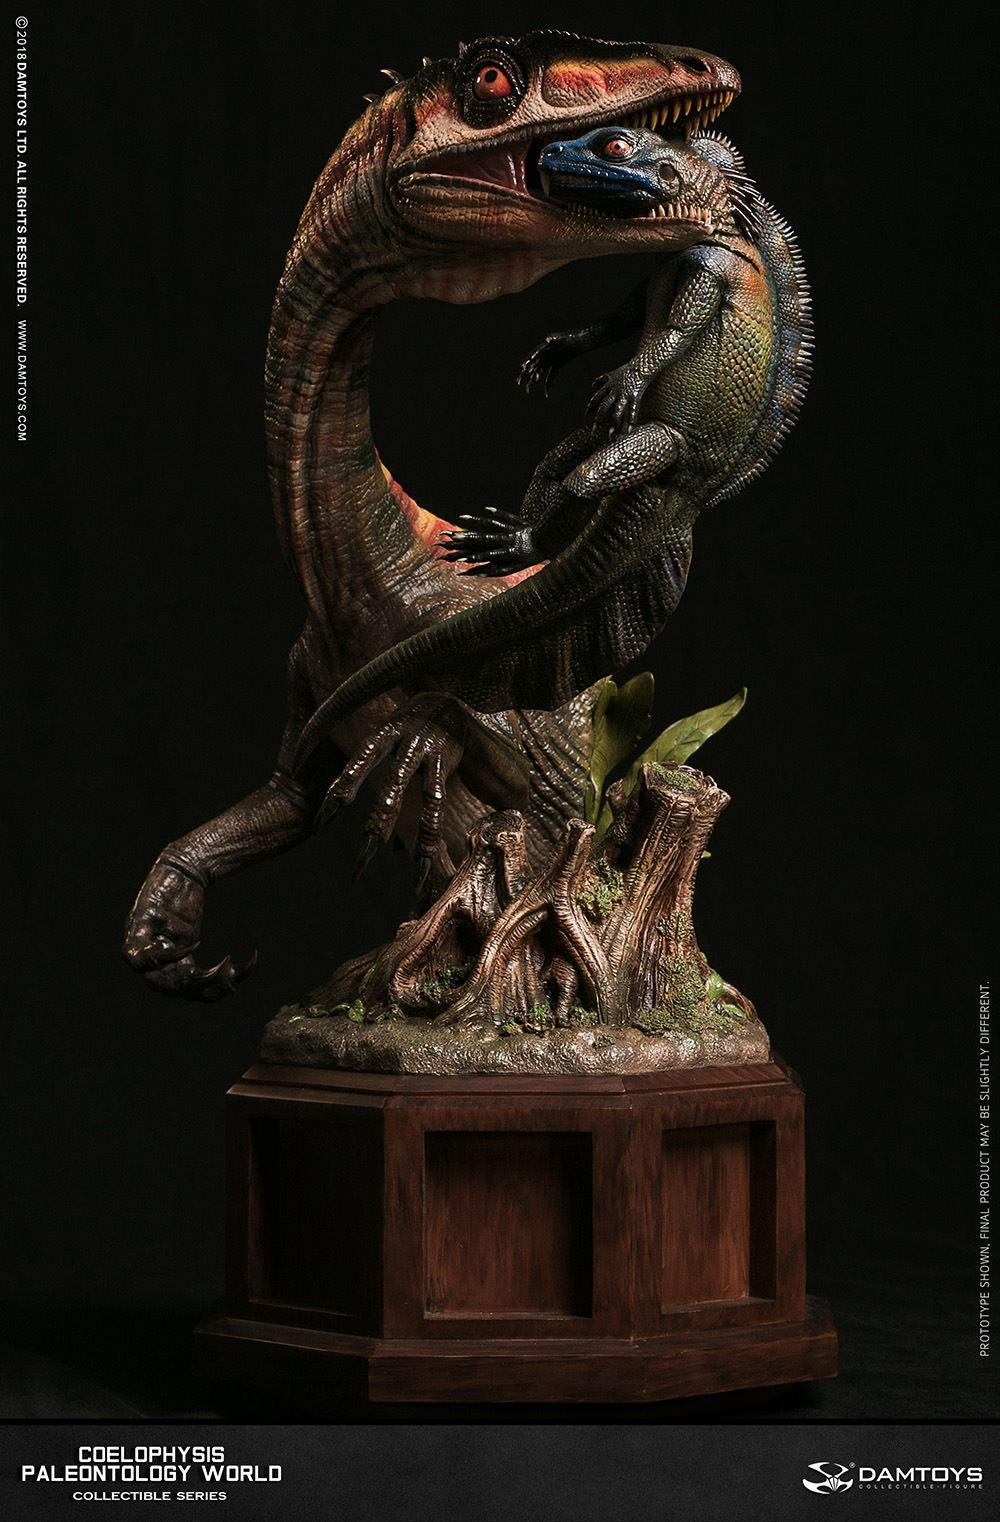 Dam Toys - Museum Collection Series - Paleontology World - Coelophysis (MUS008B)